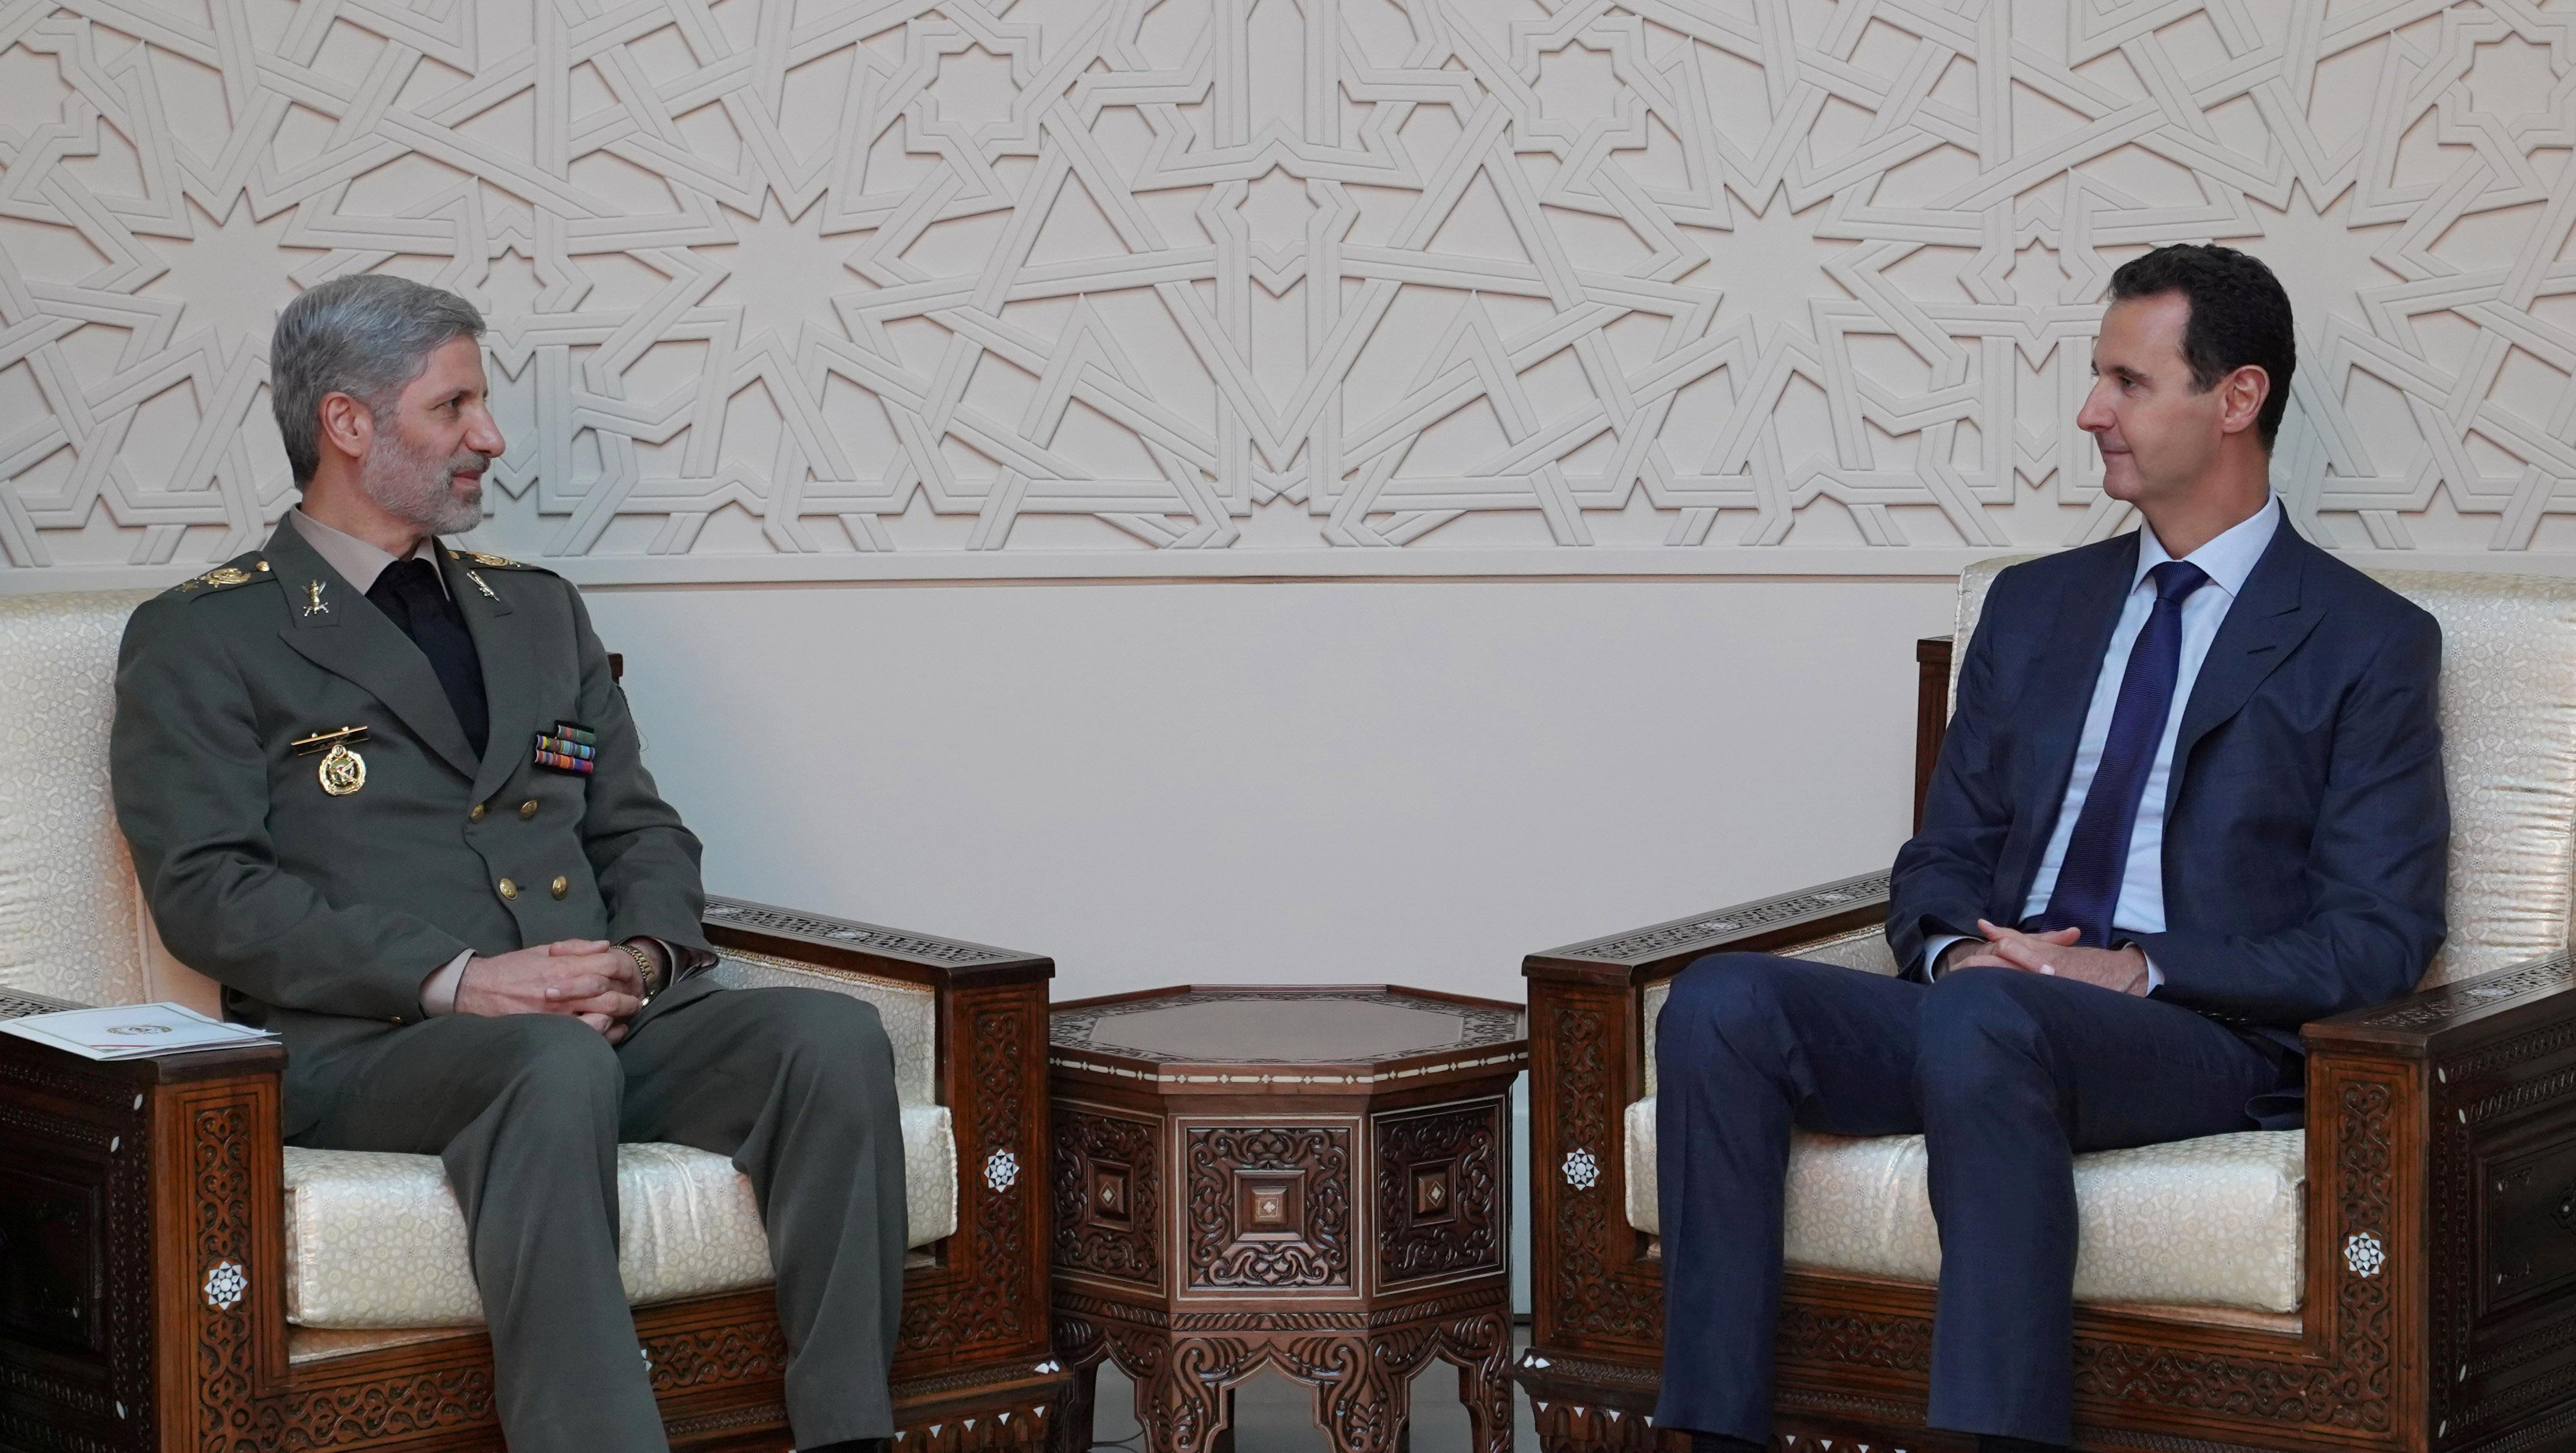 Iran Syria Agree On Military Cooperation Sign Post War